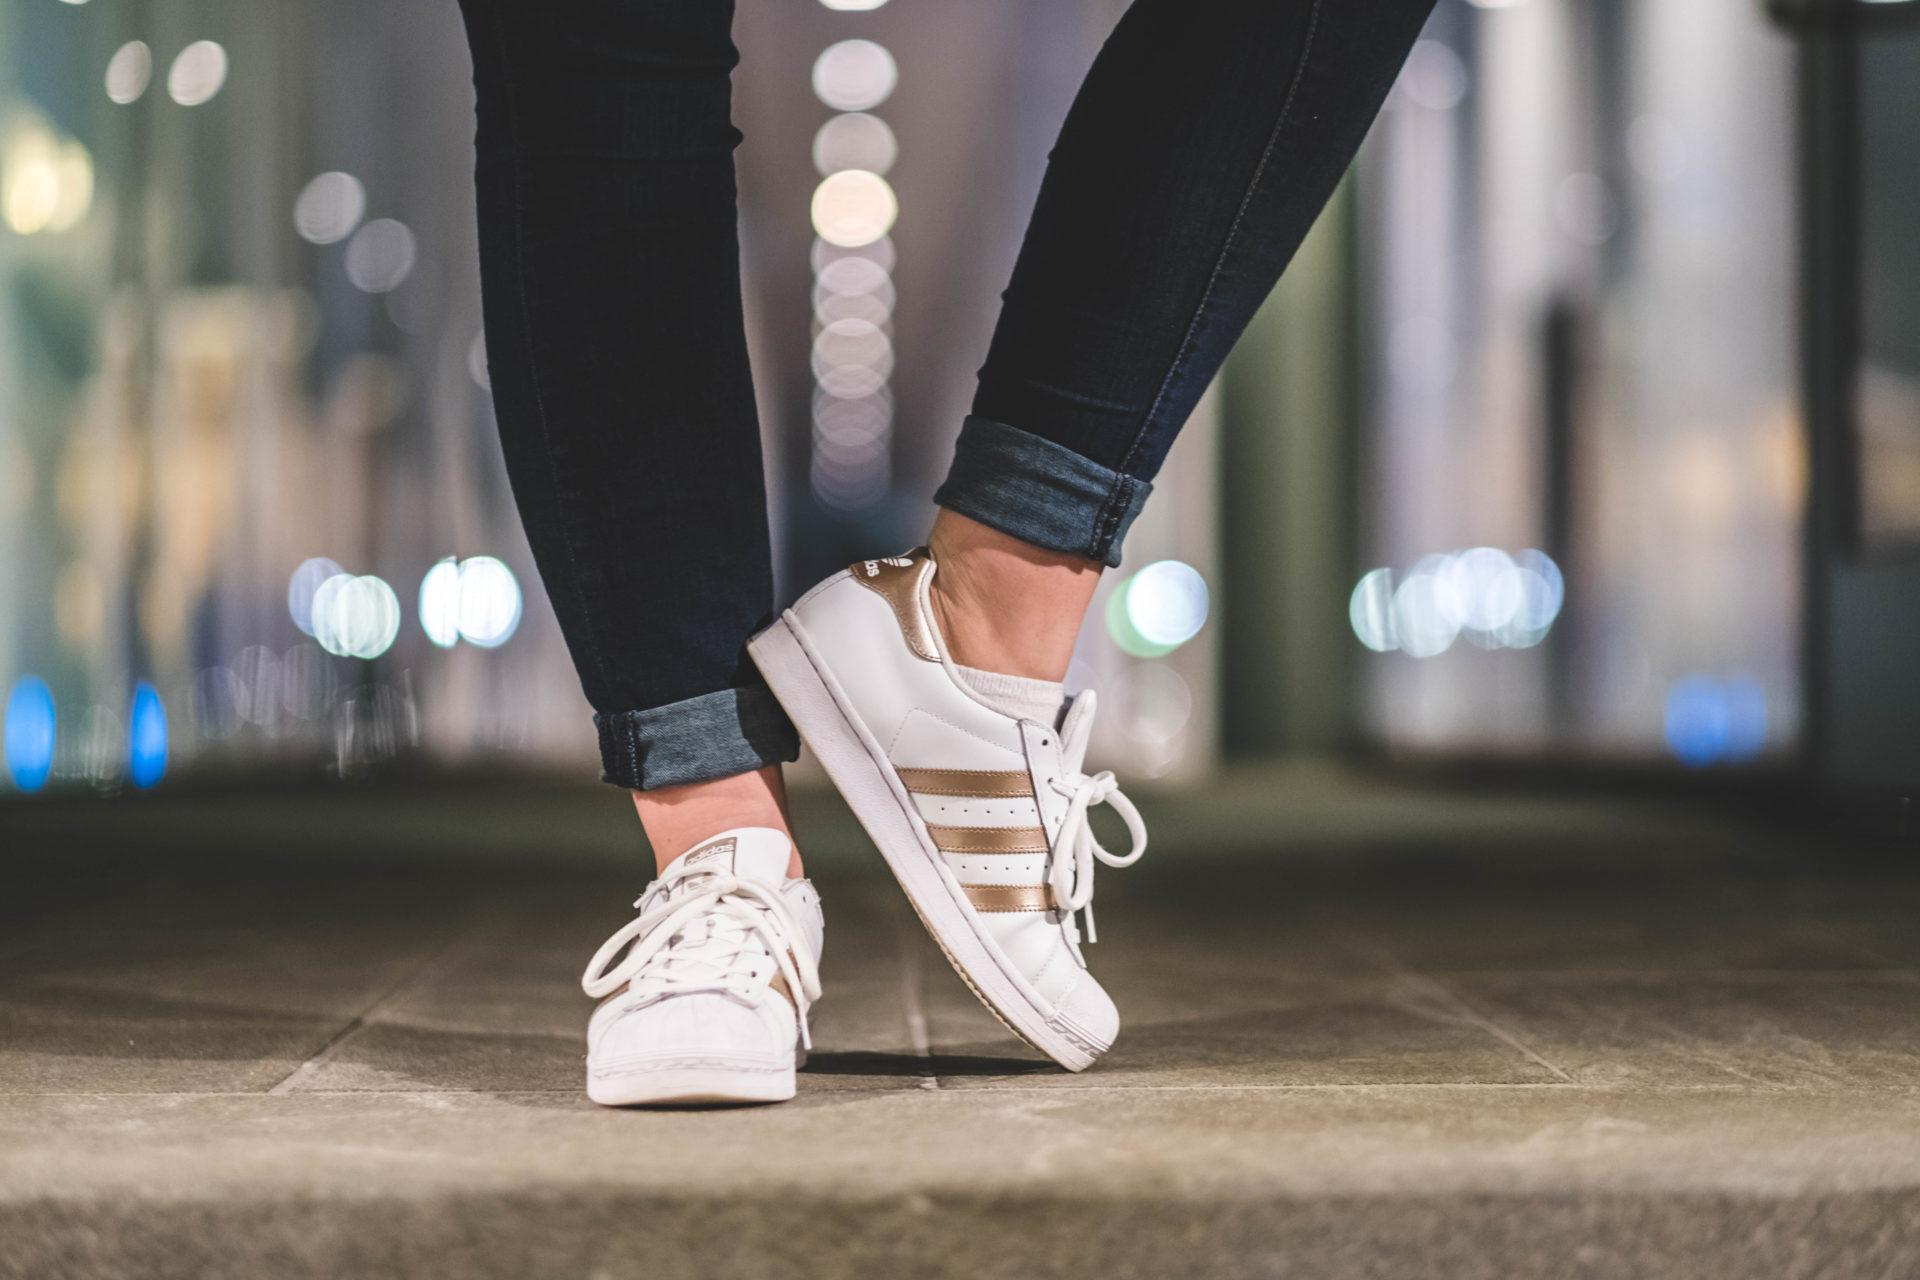 How to Wear Adidas Superstar Sneakers